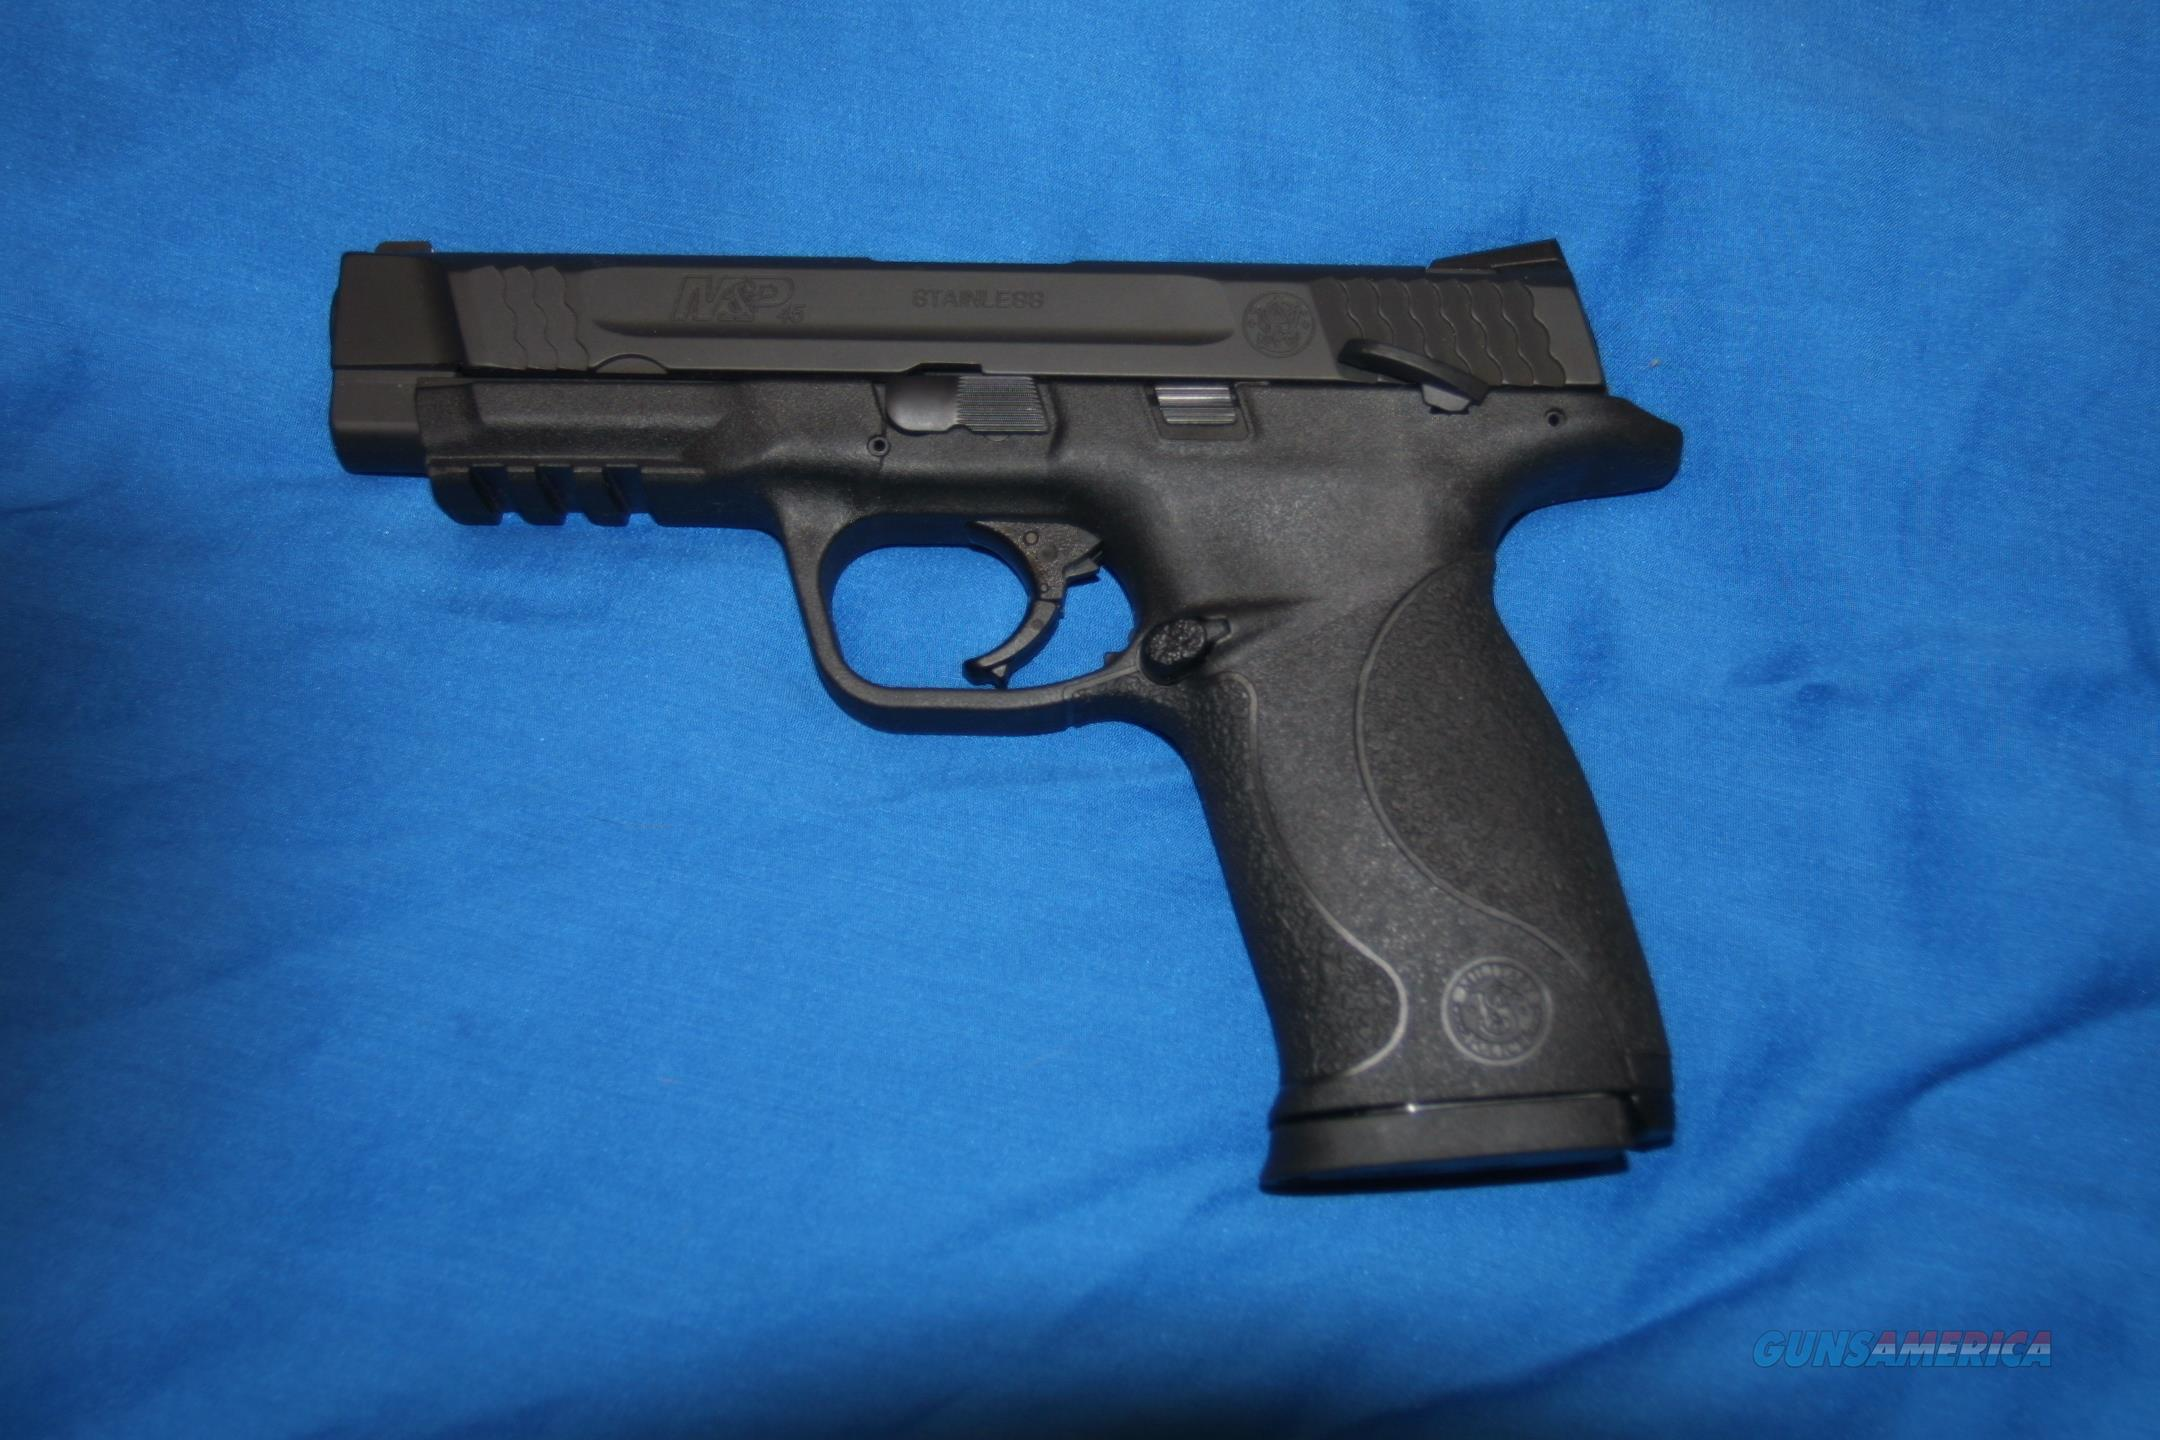 Used Smith & Wesson M&P45LE. 45 ACP with Night Sights. Law Enforcement Trade. Excellent Condition.   Guns > Pistols > Smith & Wesson Pistols - Autos > Polymer Frame